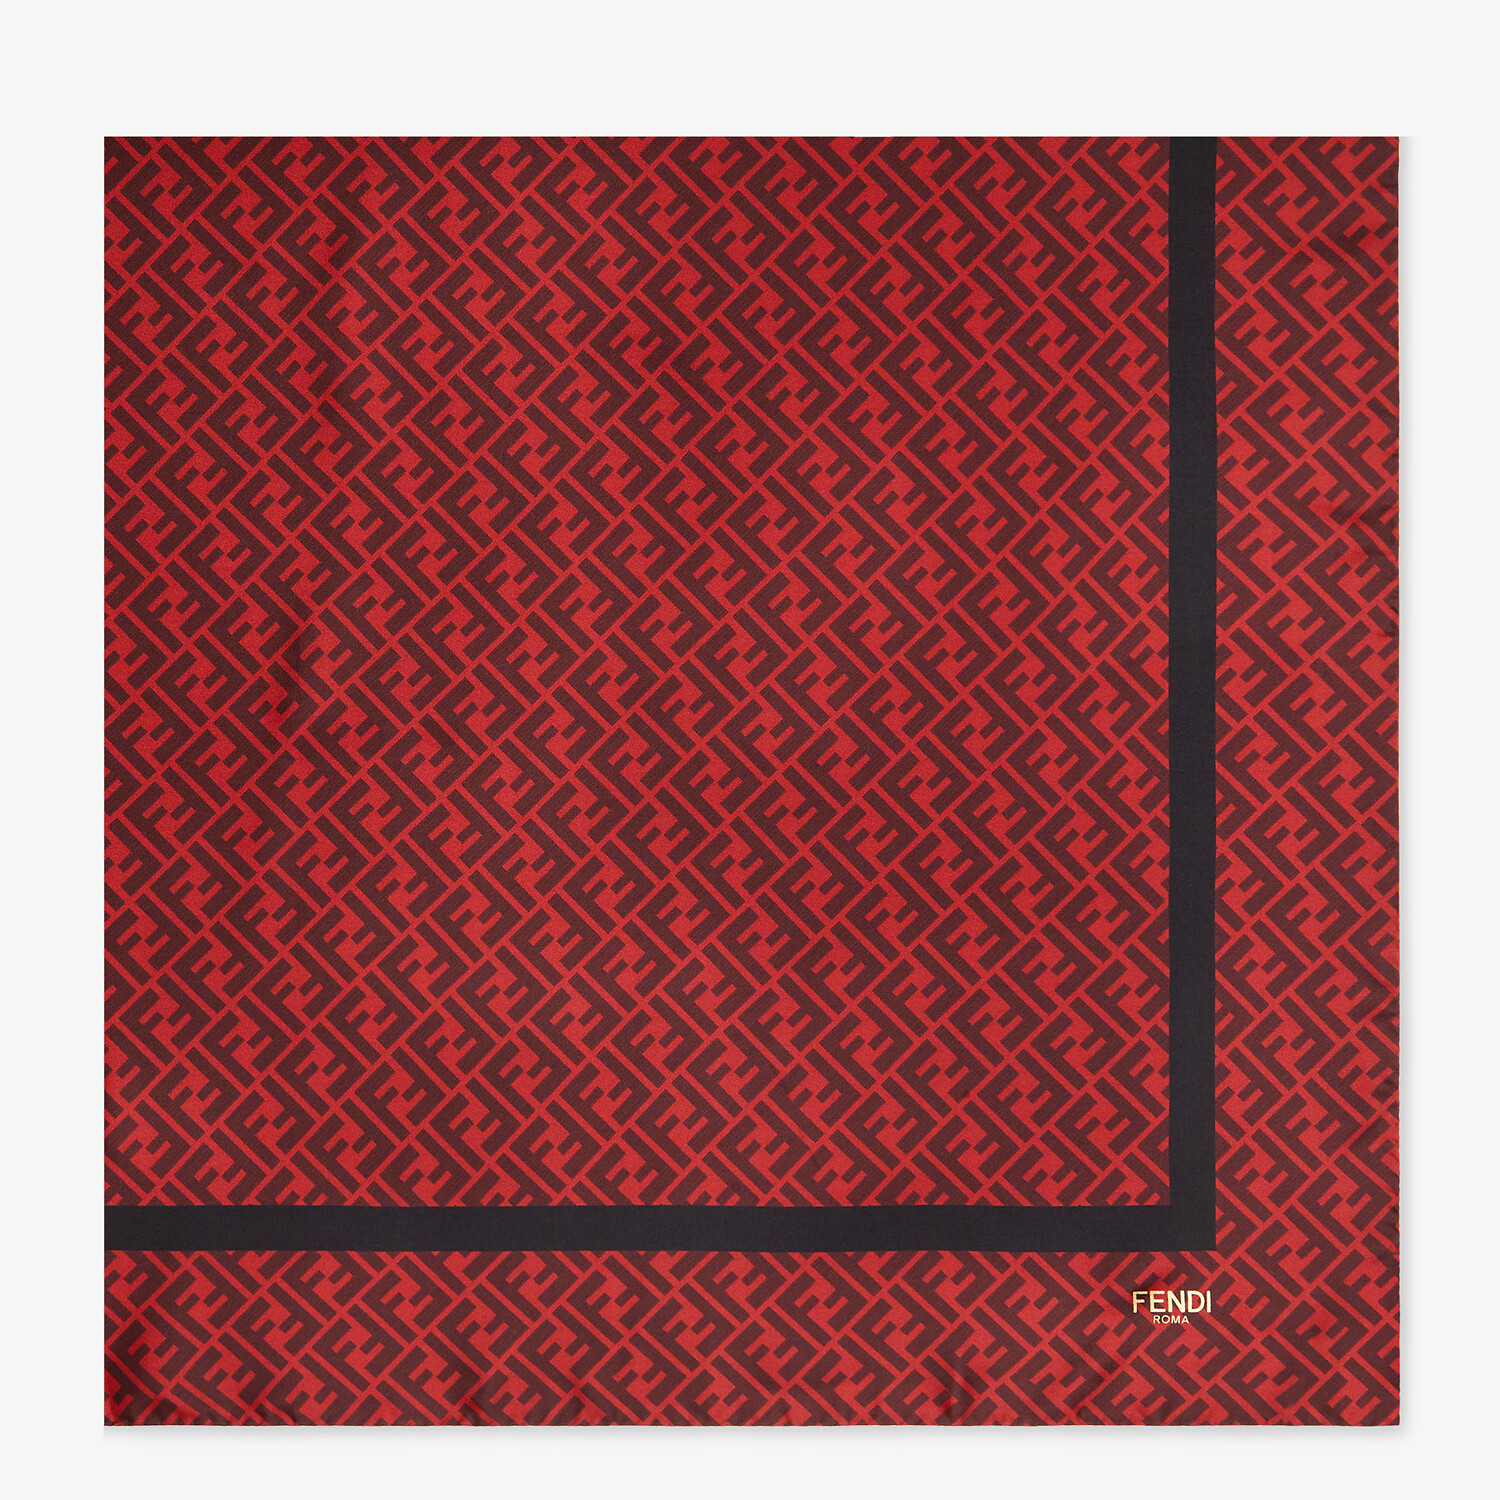 FENDI KEFFIYEH - Scarf from the Lunar New Year Limited Capsule Collection - view 1 detail